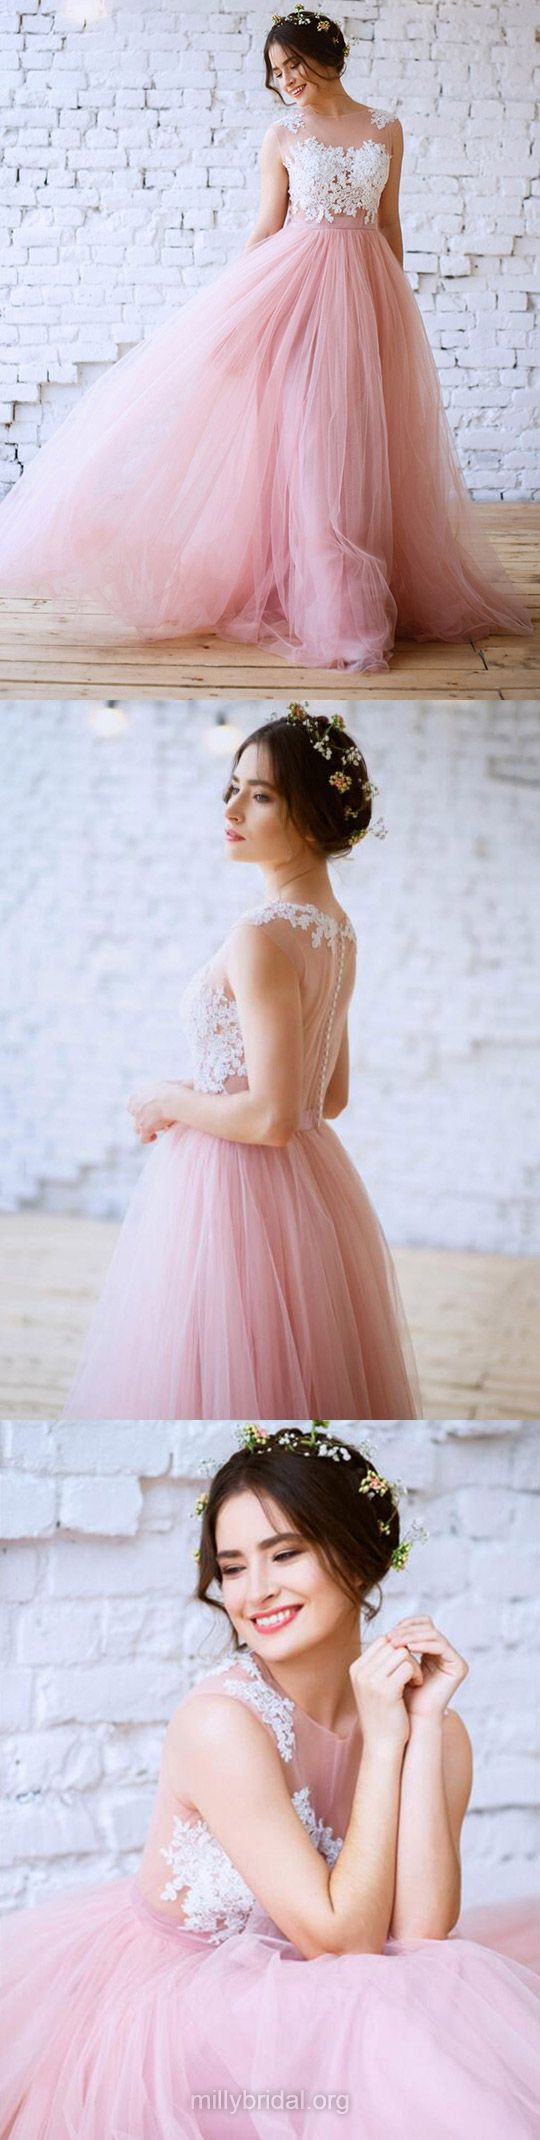 Pink Prom Dresses Long, 2018 Formal Dresses Princess, Lace Evening Party Dresses Scoop Neck Tulle Lace Dresses, dress, clothe, women's fashion, outfit inspiration, pretty clothes, shoes, bags and accessories